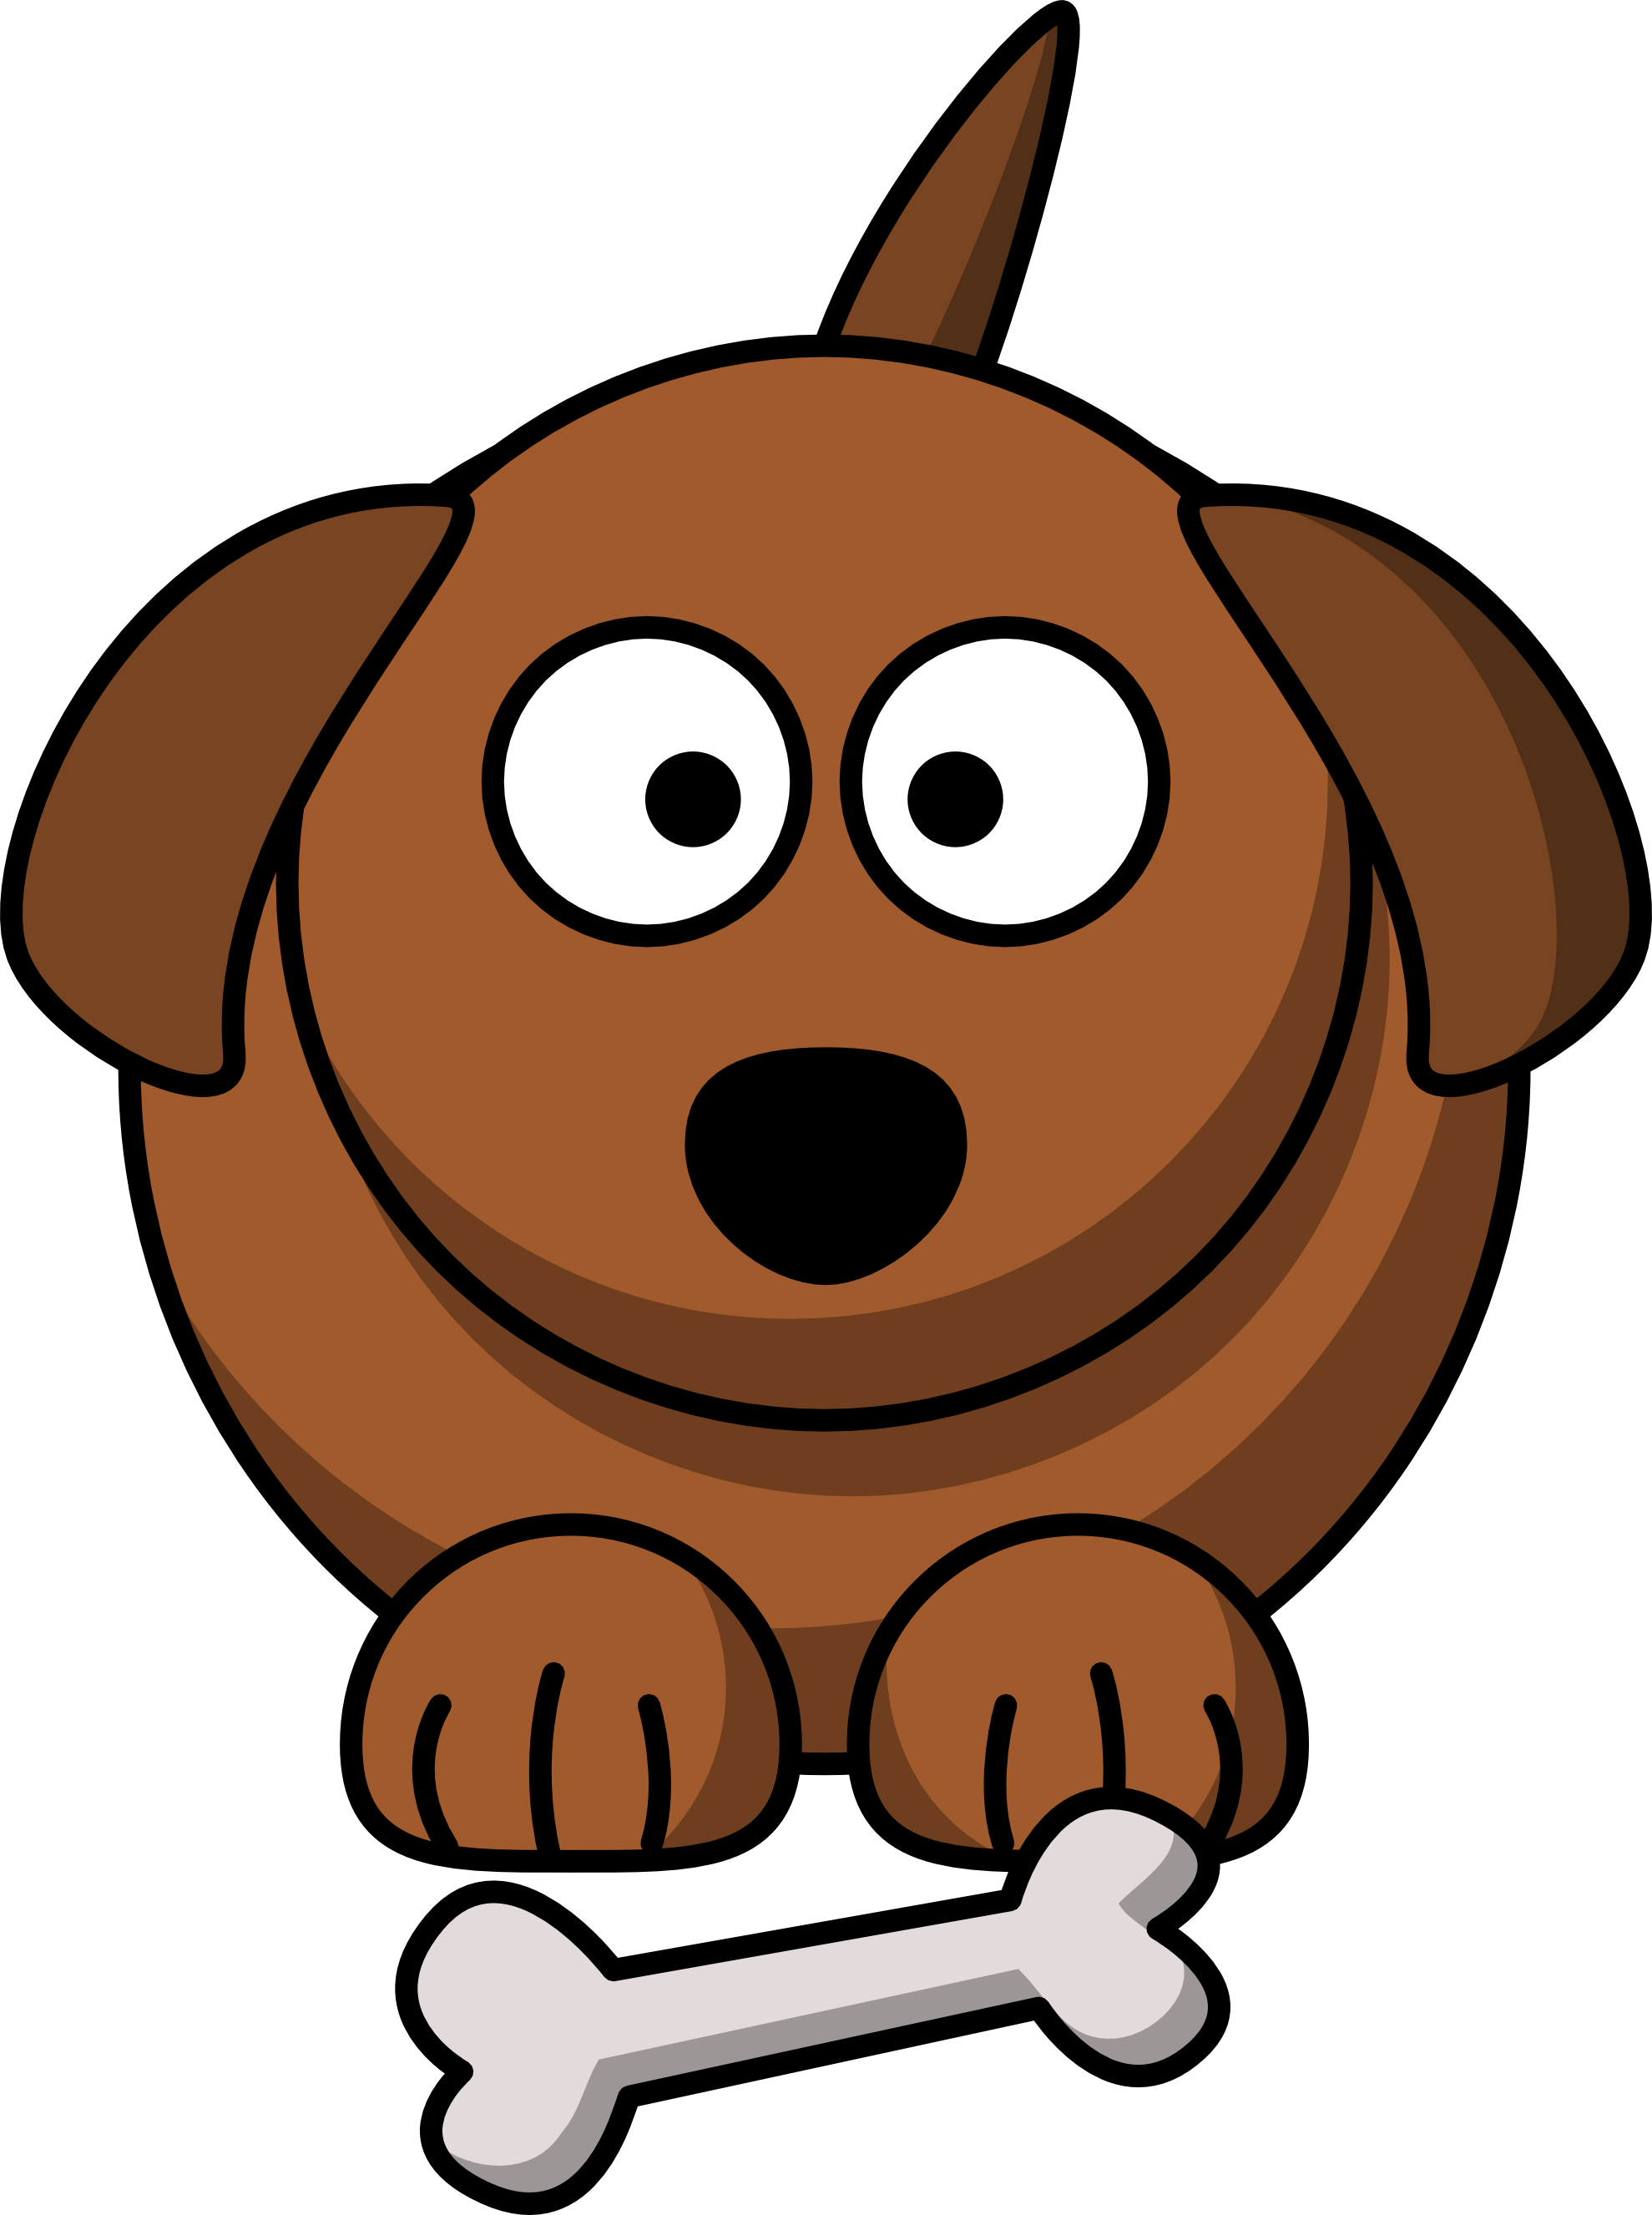 ... Dog toy clip art free clipart images - Cliparting clipartall.com ...